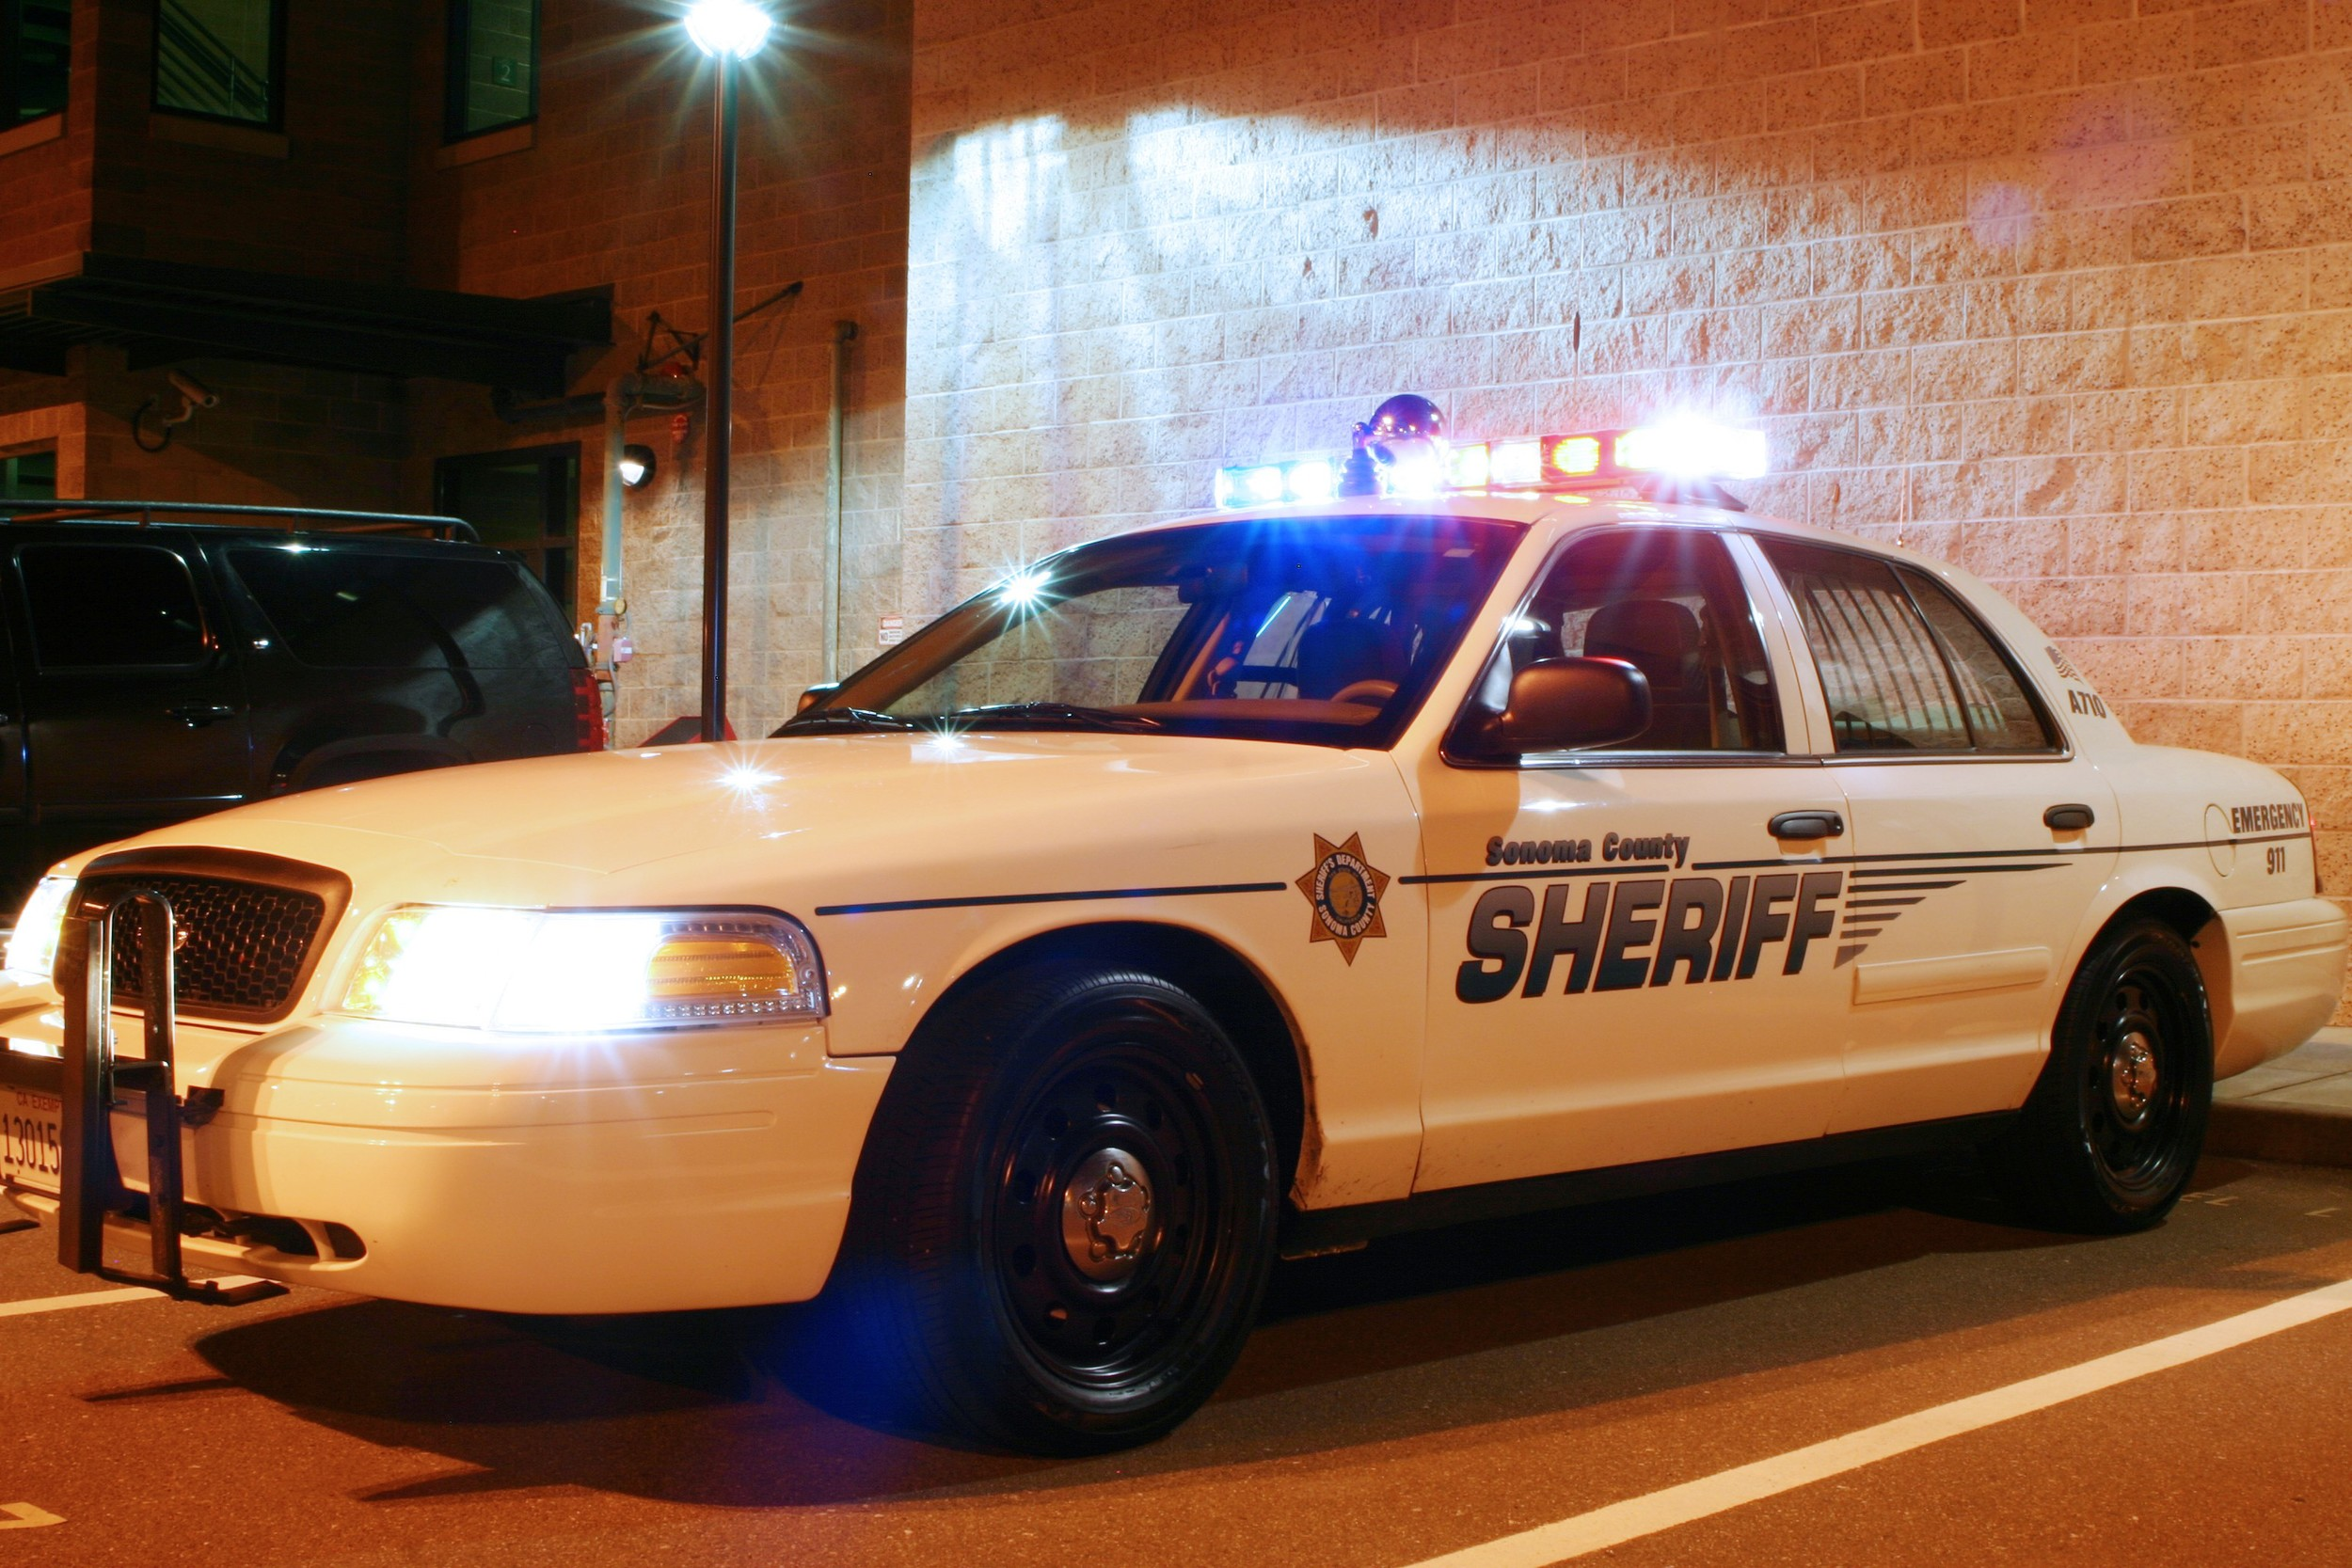 Ford Crown Victoria patrol vehicle at night.